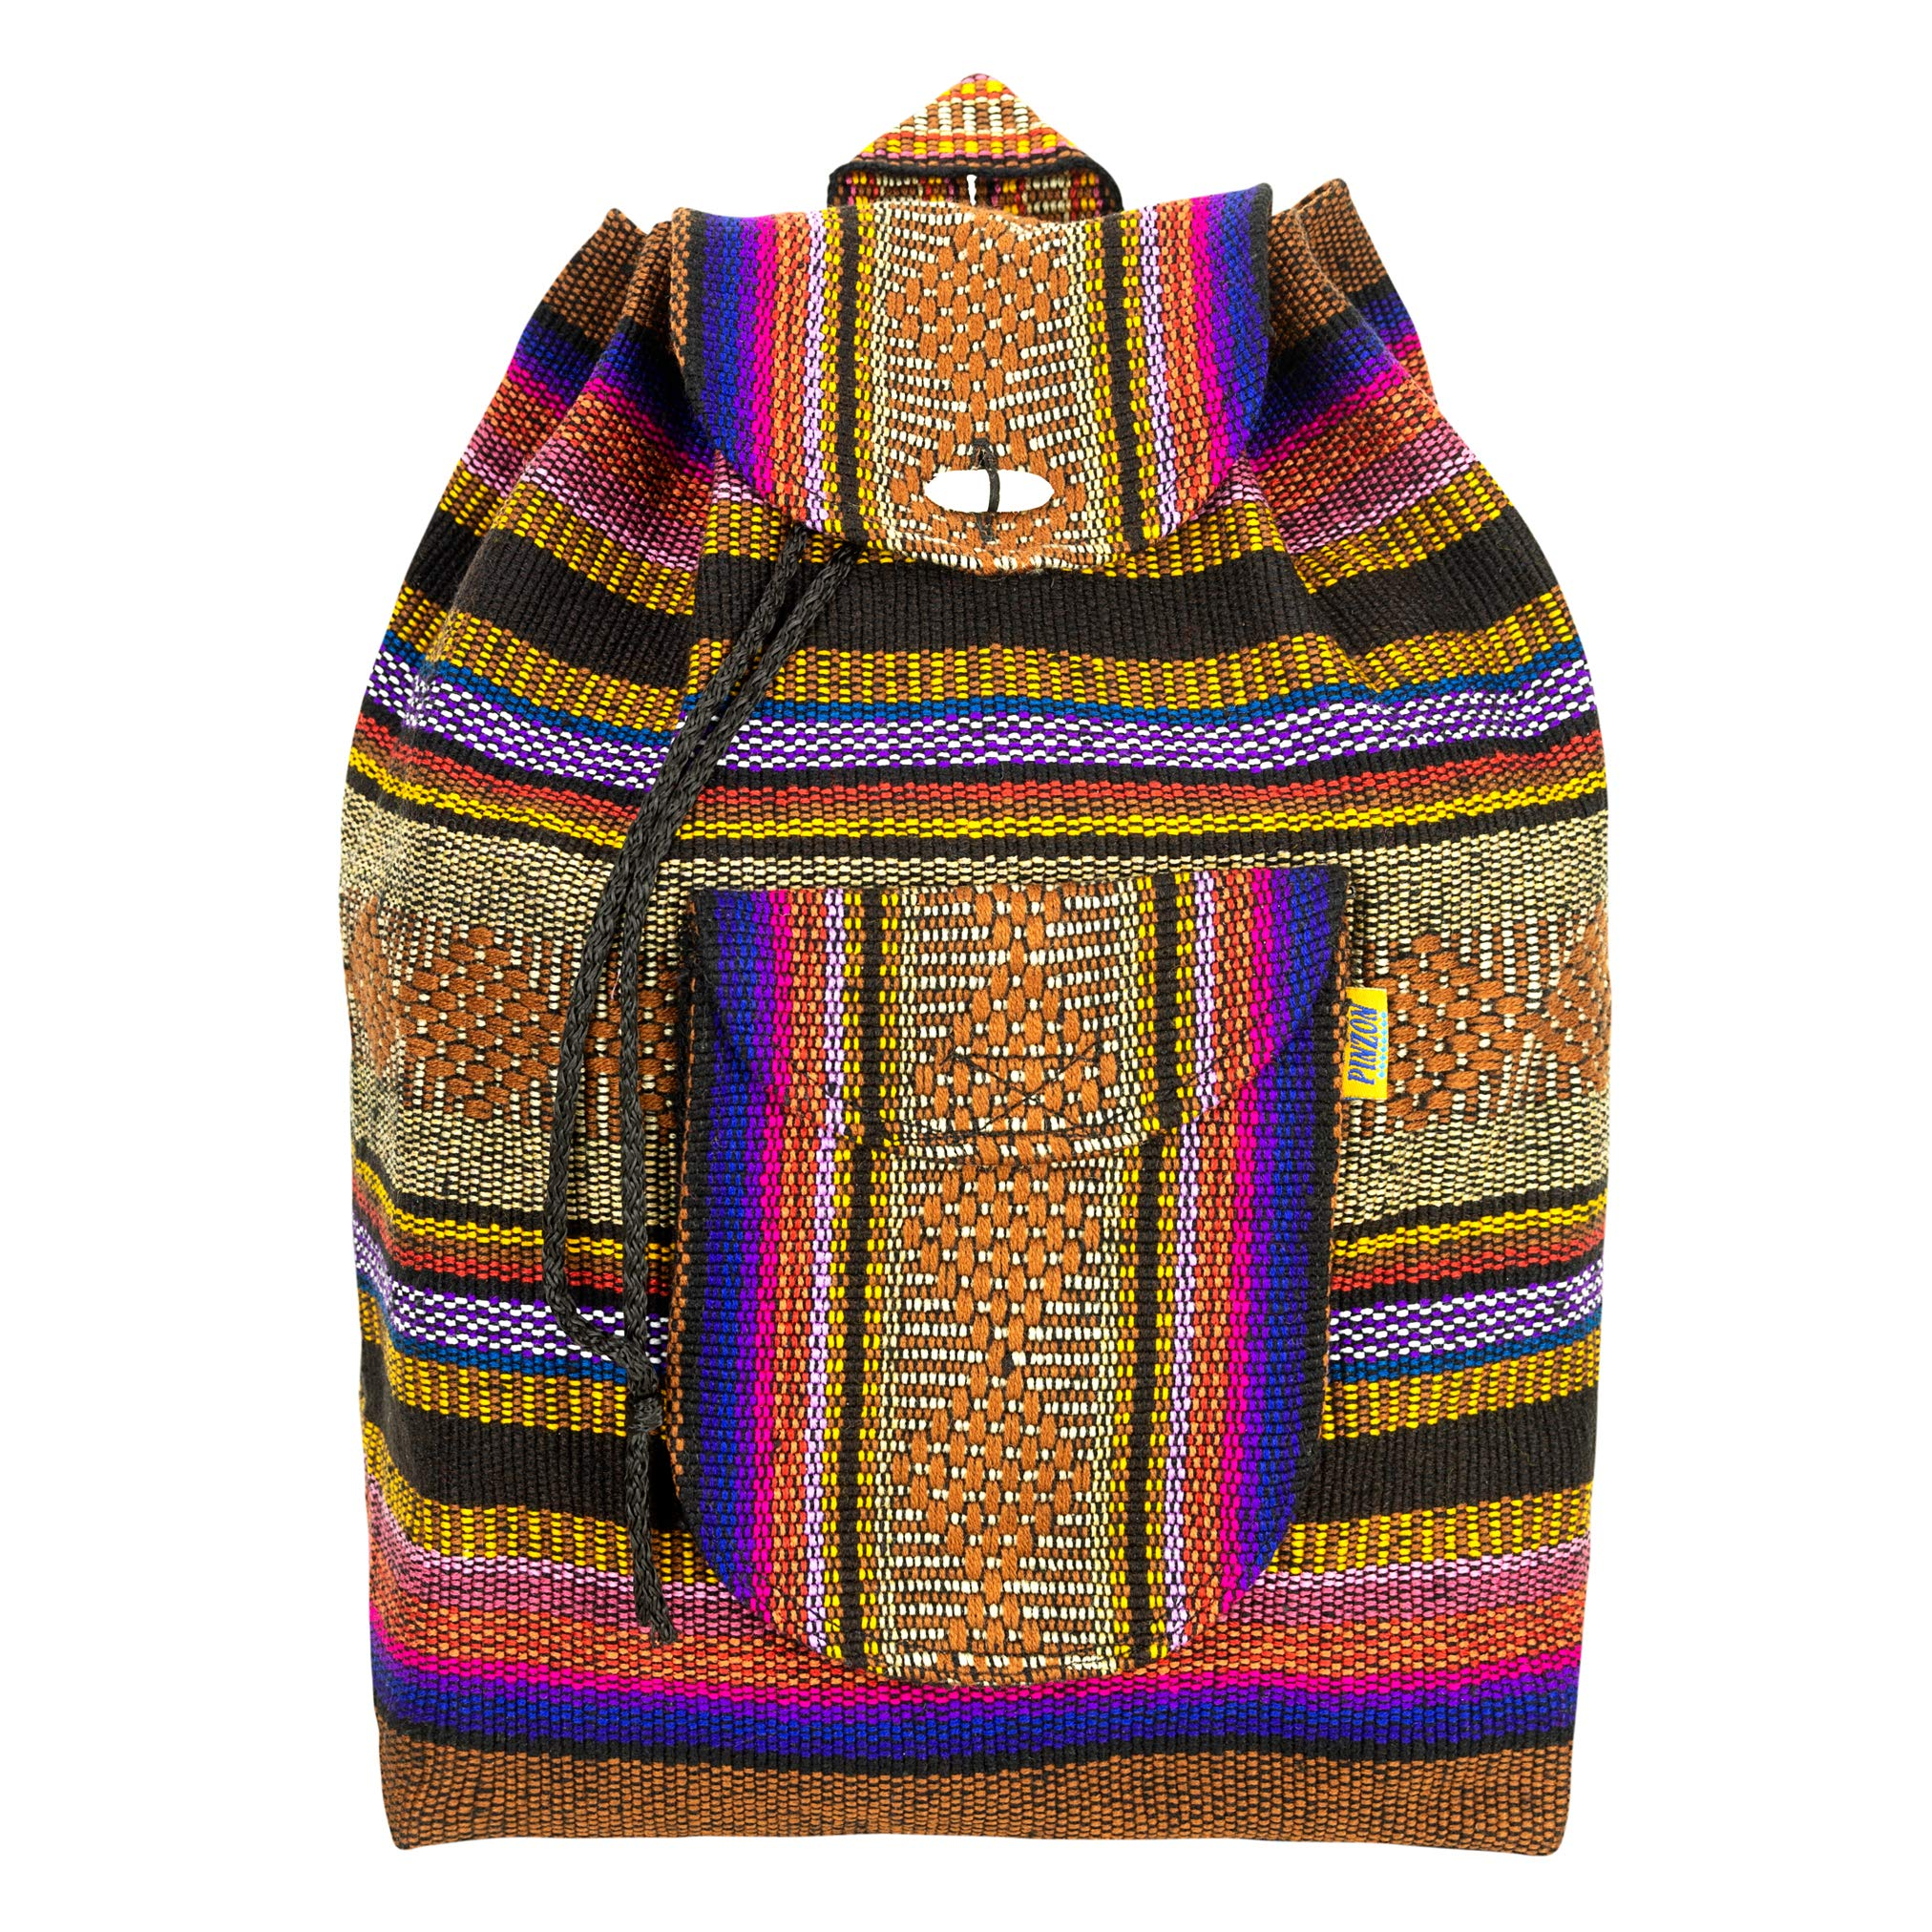 PINZON Large Unisex Hippie Backpack Aztec Schoolbag Foldable Rucksack Canvas Bag Casual Daypack Backpack for Beach – Unisex Bohemian Dufflebag College Gym Bag Handmade in Mexico (Brown Purple)